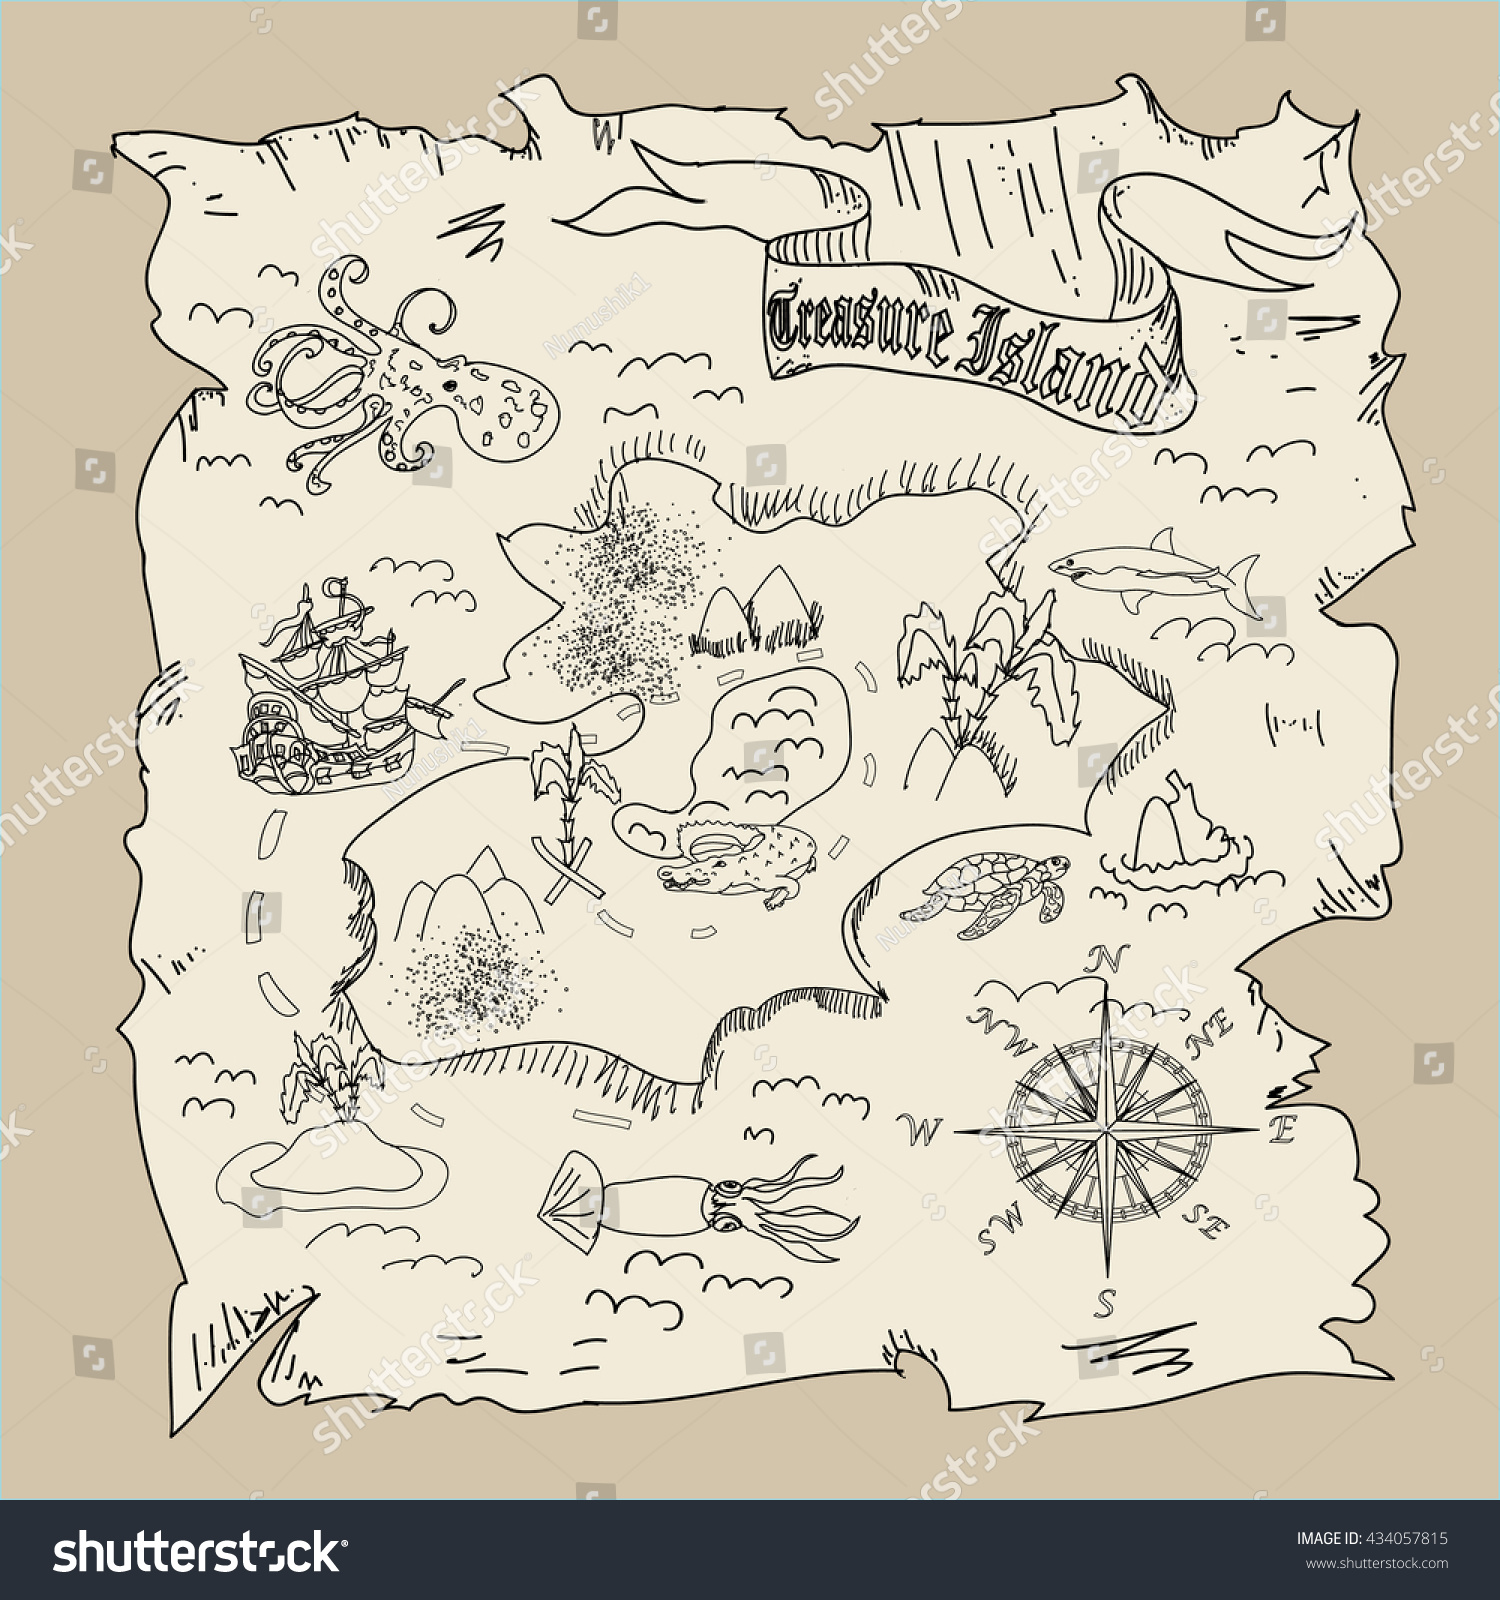 treasure island map kids coloring page stock illustration